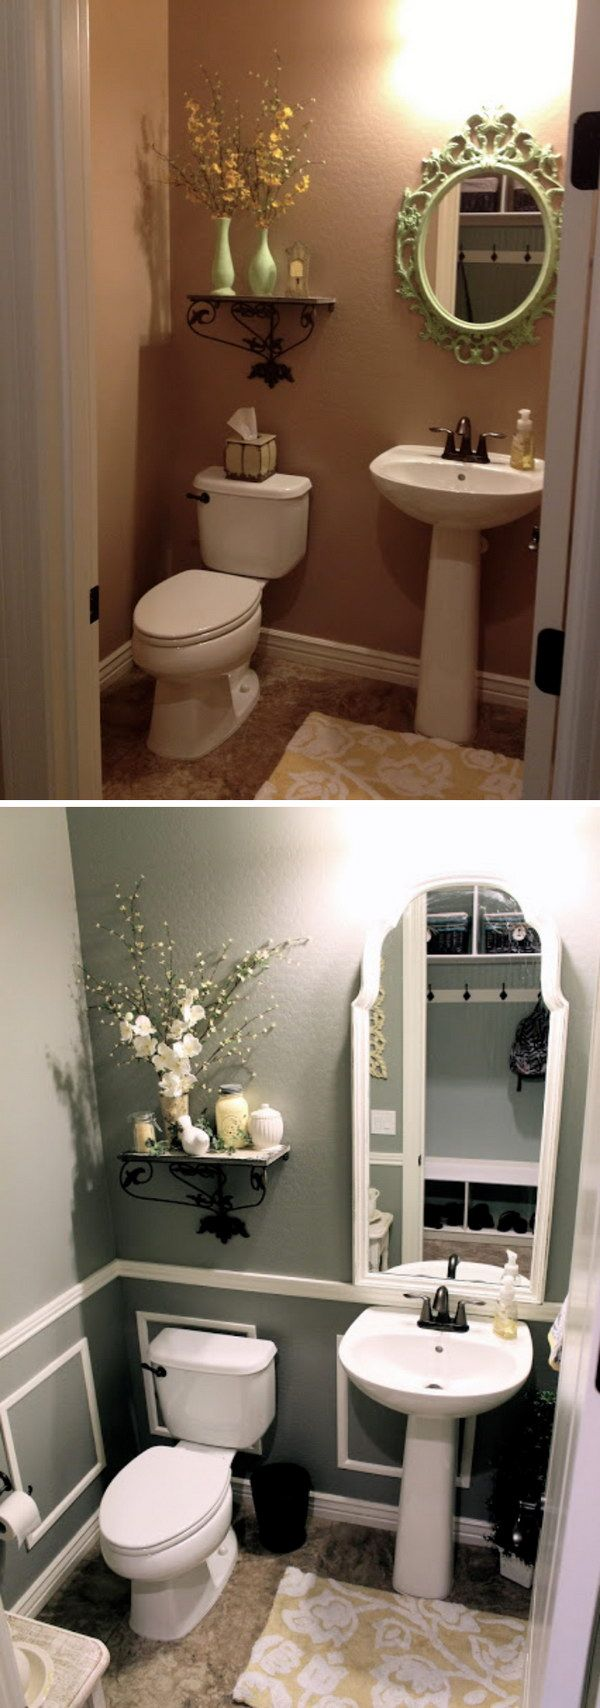 Bathroom Remodeling Ideas On A Budget best 25+ half bathroom remodel ideas on pinterest | half bathroom